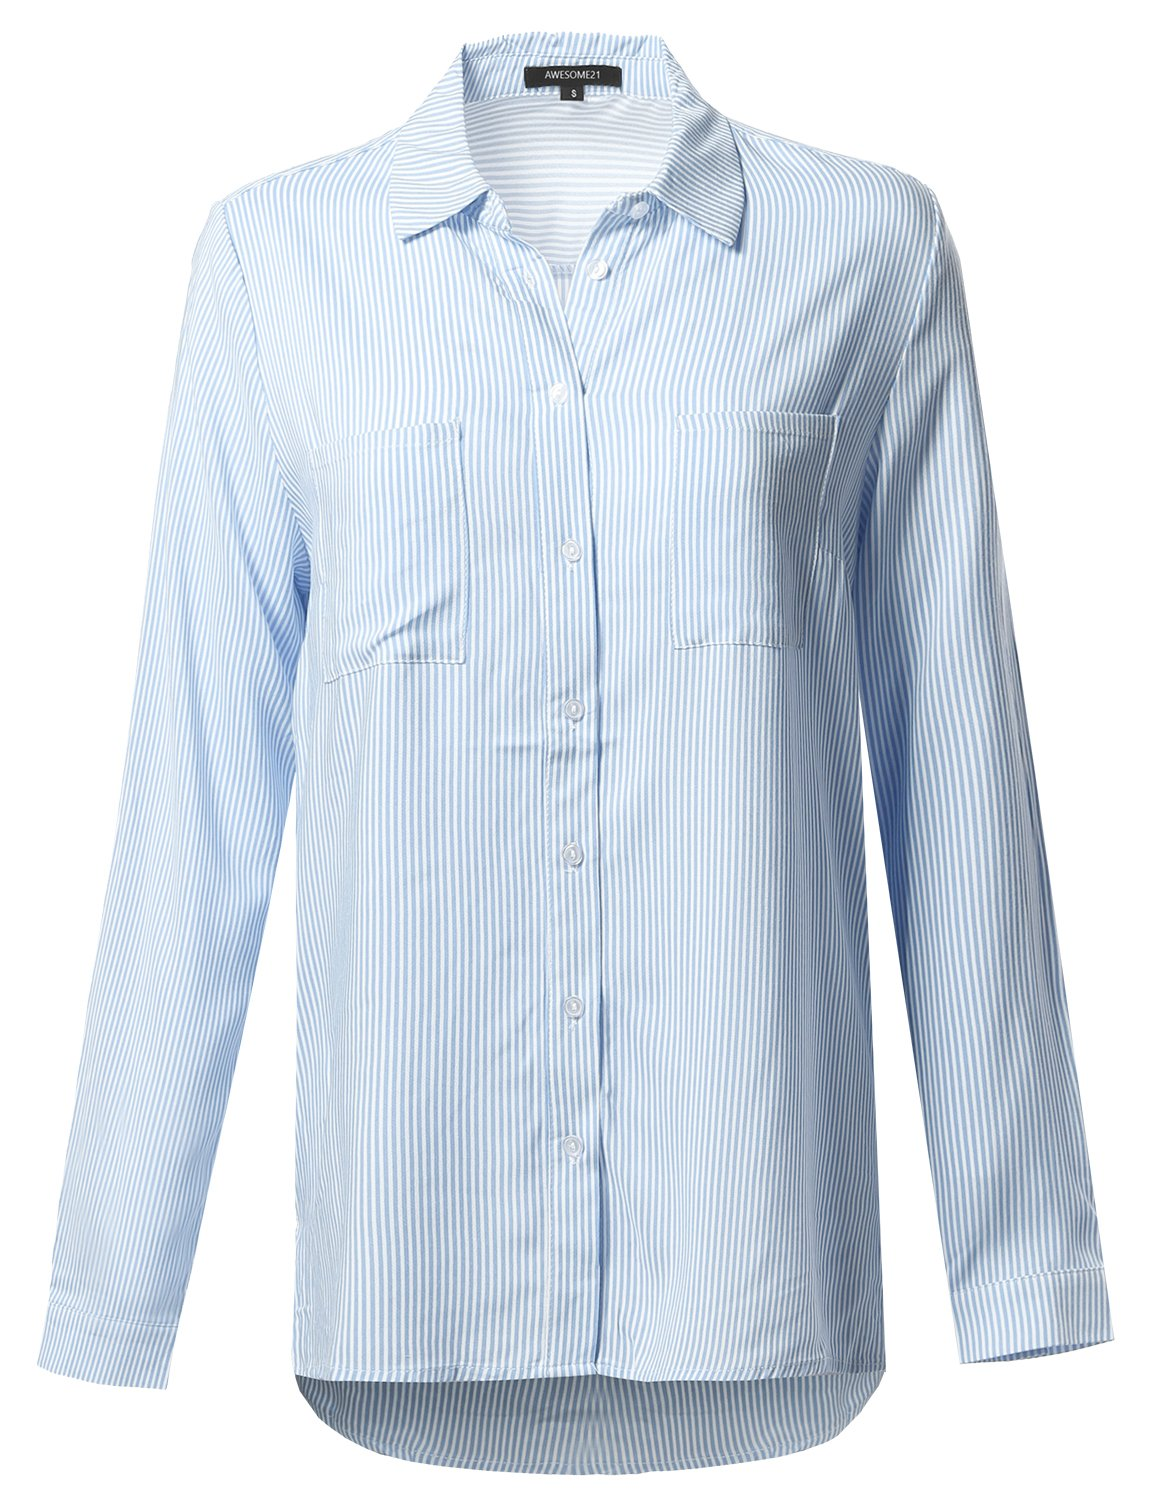 Awesome21 SHIRT レディース B072187BSF M|Aawstl0005 Light Blue White Aawstl0005 Light Blue White M